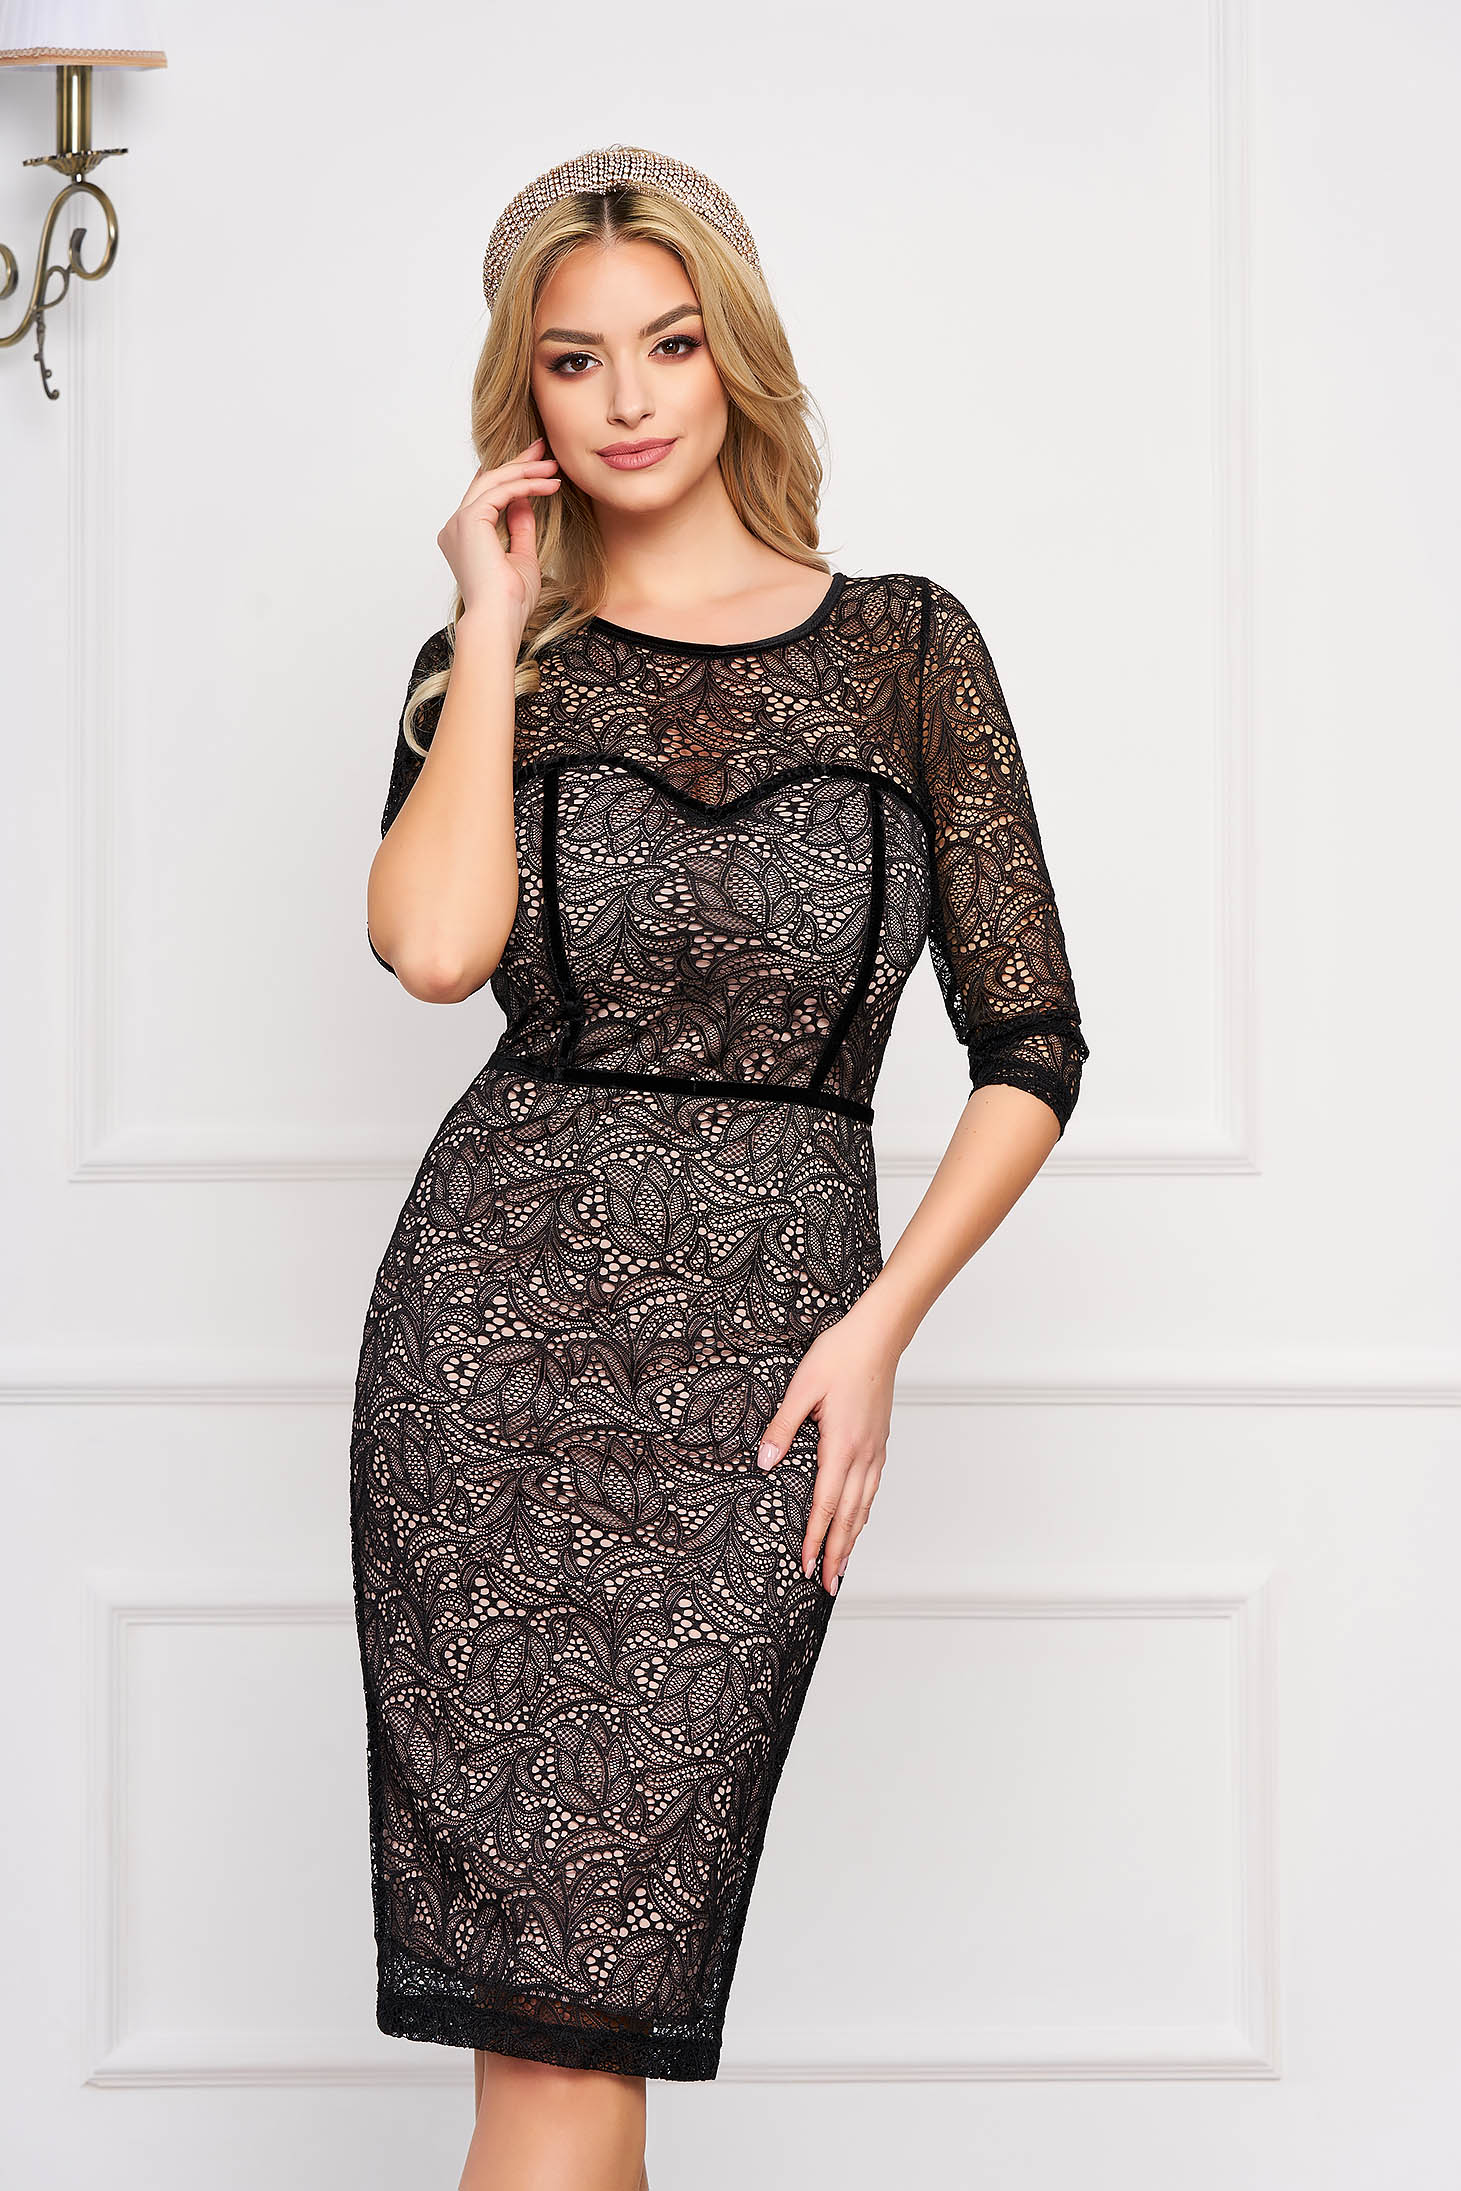 StarShinerS black dress occasional short cut pencil laced neckline with 3/4 sleeves accessorized with tied waistband